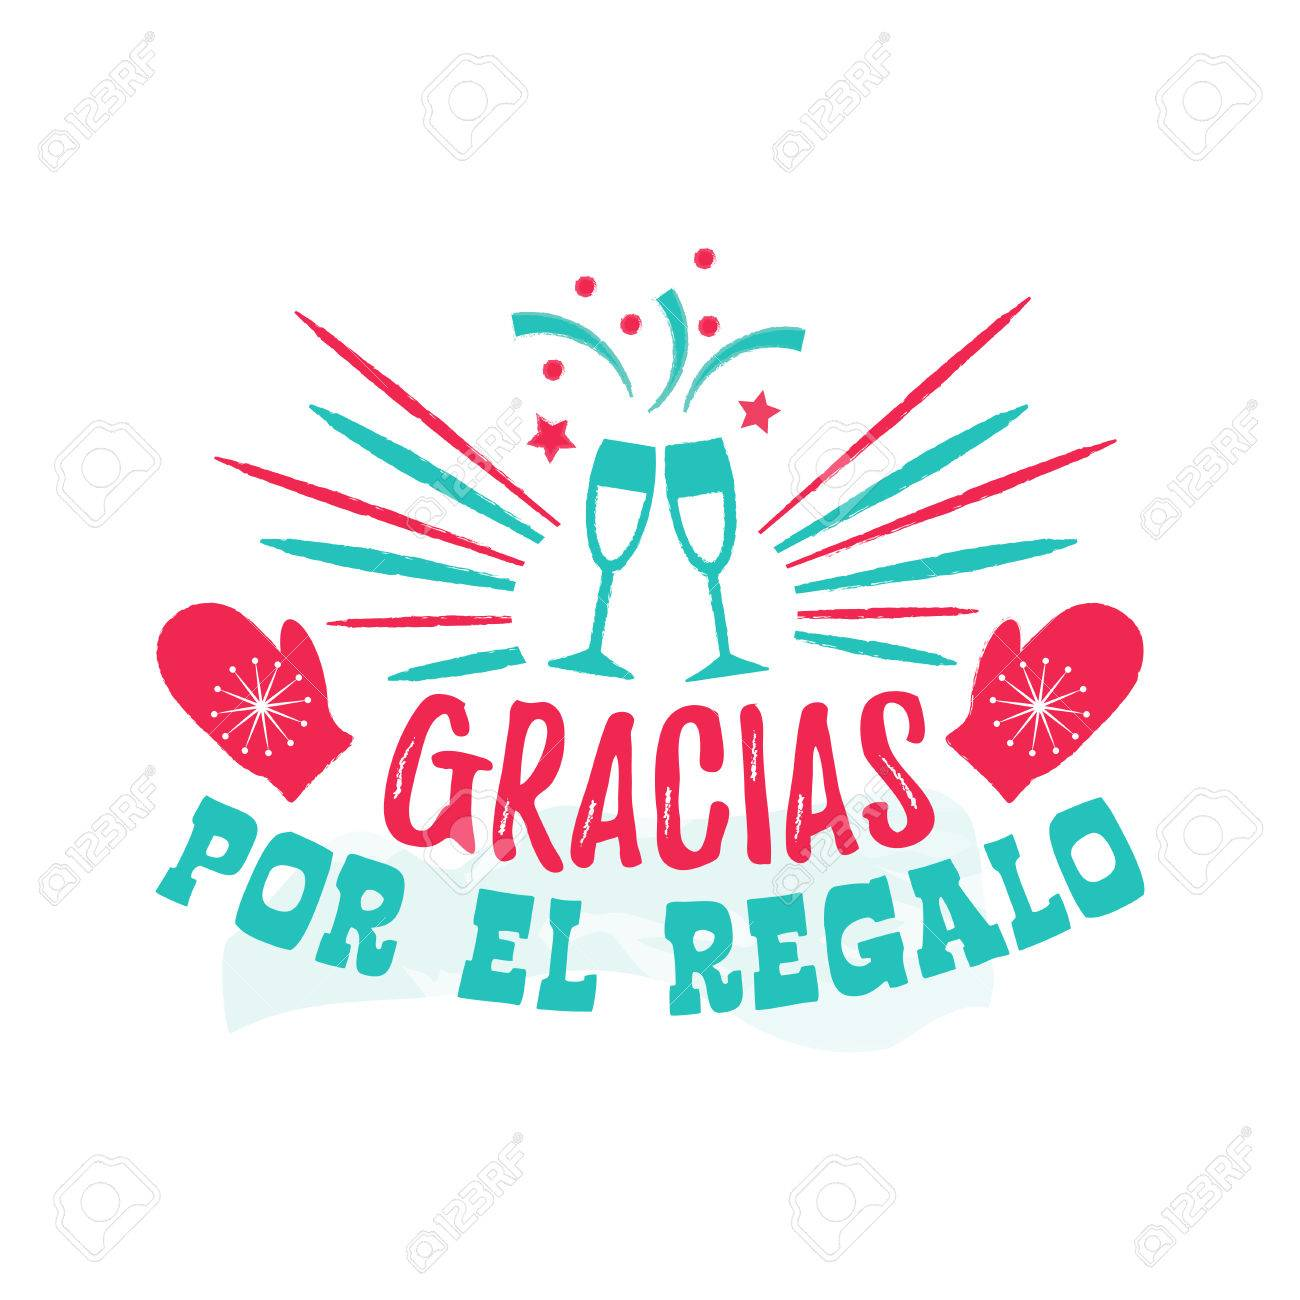 Thank You For The Gift Spanish Language Royalty Free Cliparts